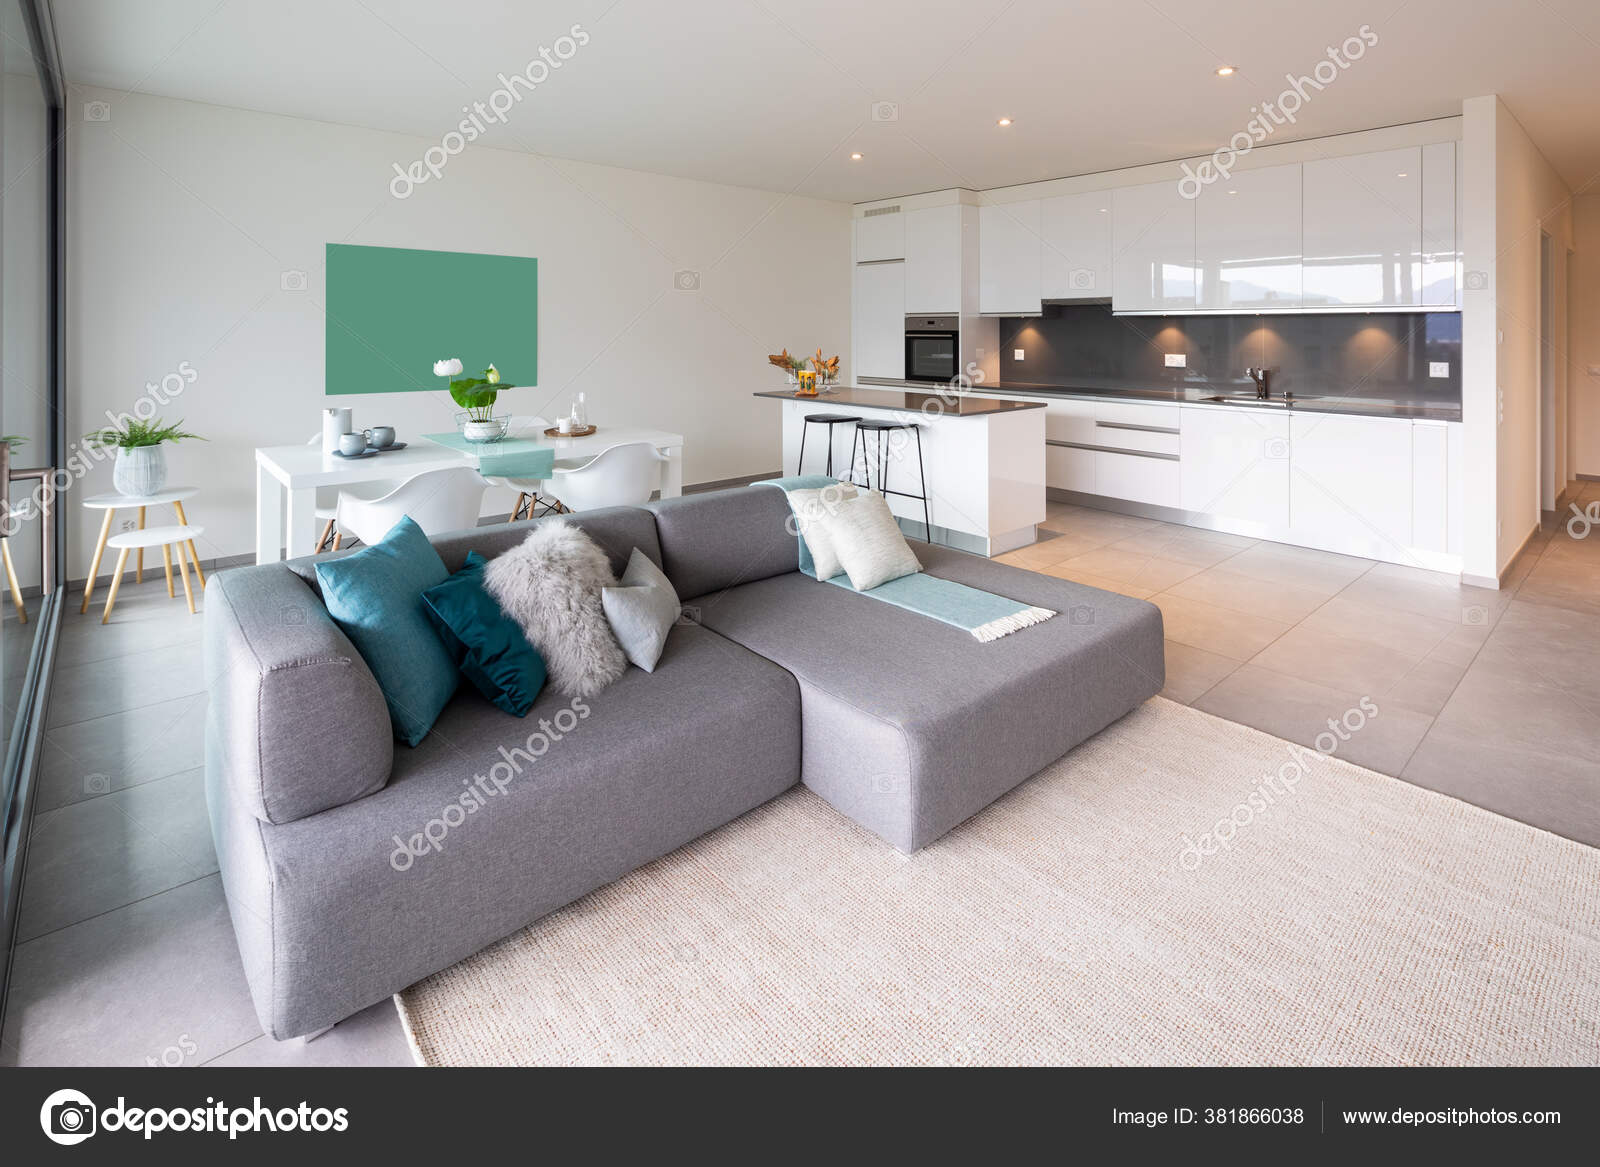 Interior Kitchen Open Living Room Dining Room Modern Apartment Nobody Stock Photo Image By Zveiger 381866038